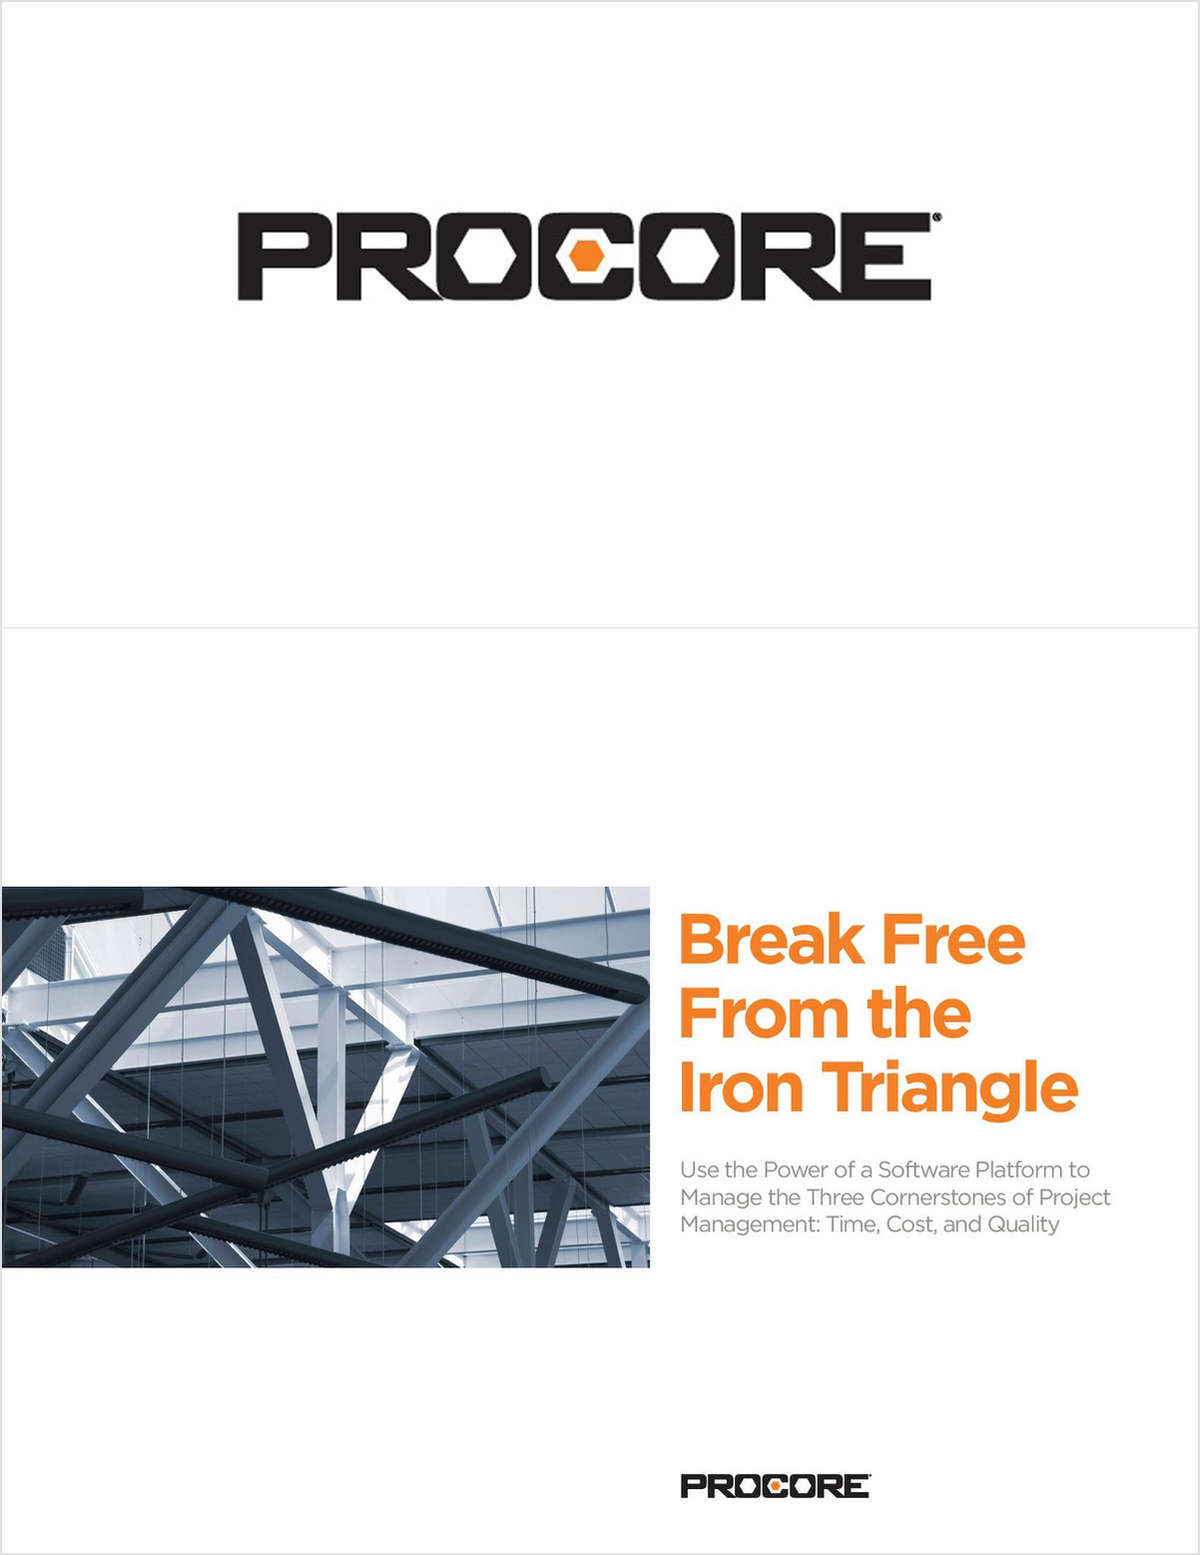 How Construction Professionals Can Break Free From the Iron Triangle